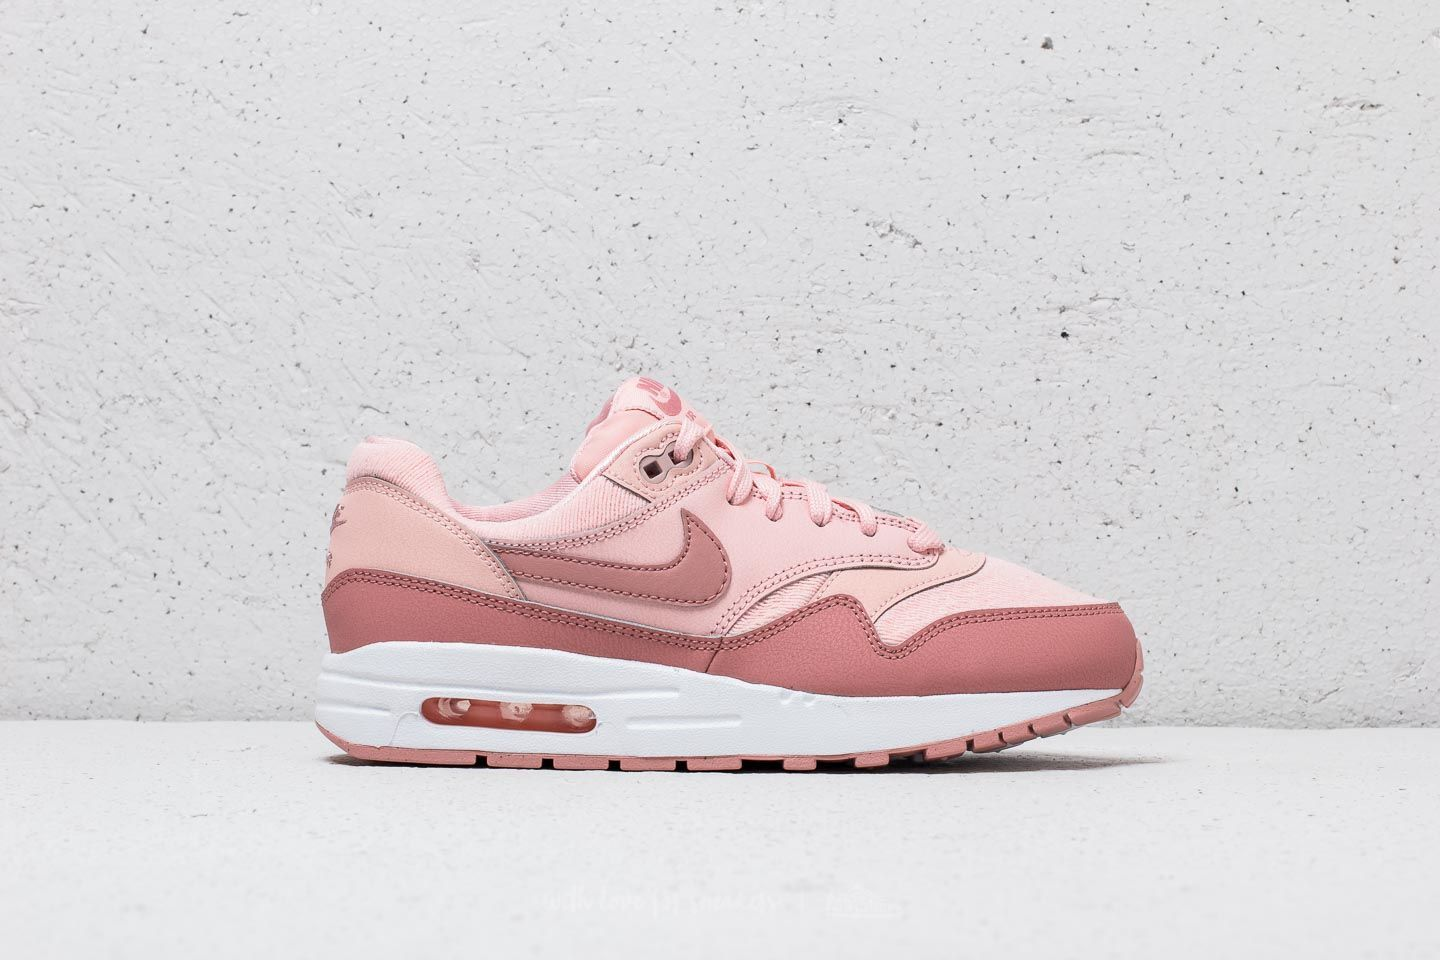 info for 1c360 7a5e2 Nike Air Max 1 SE (GS)   Storm Pink  Rust Pink    133